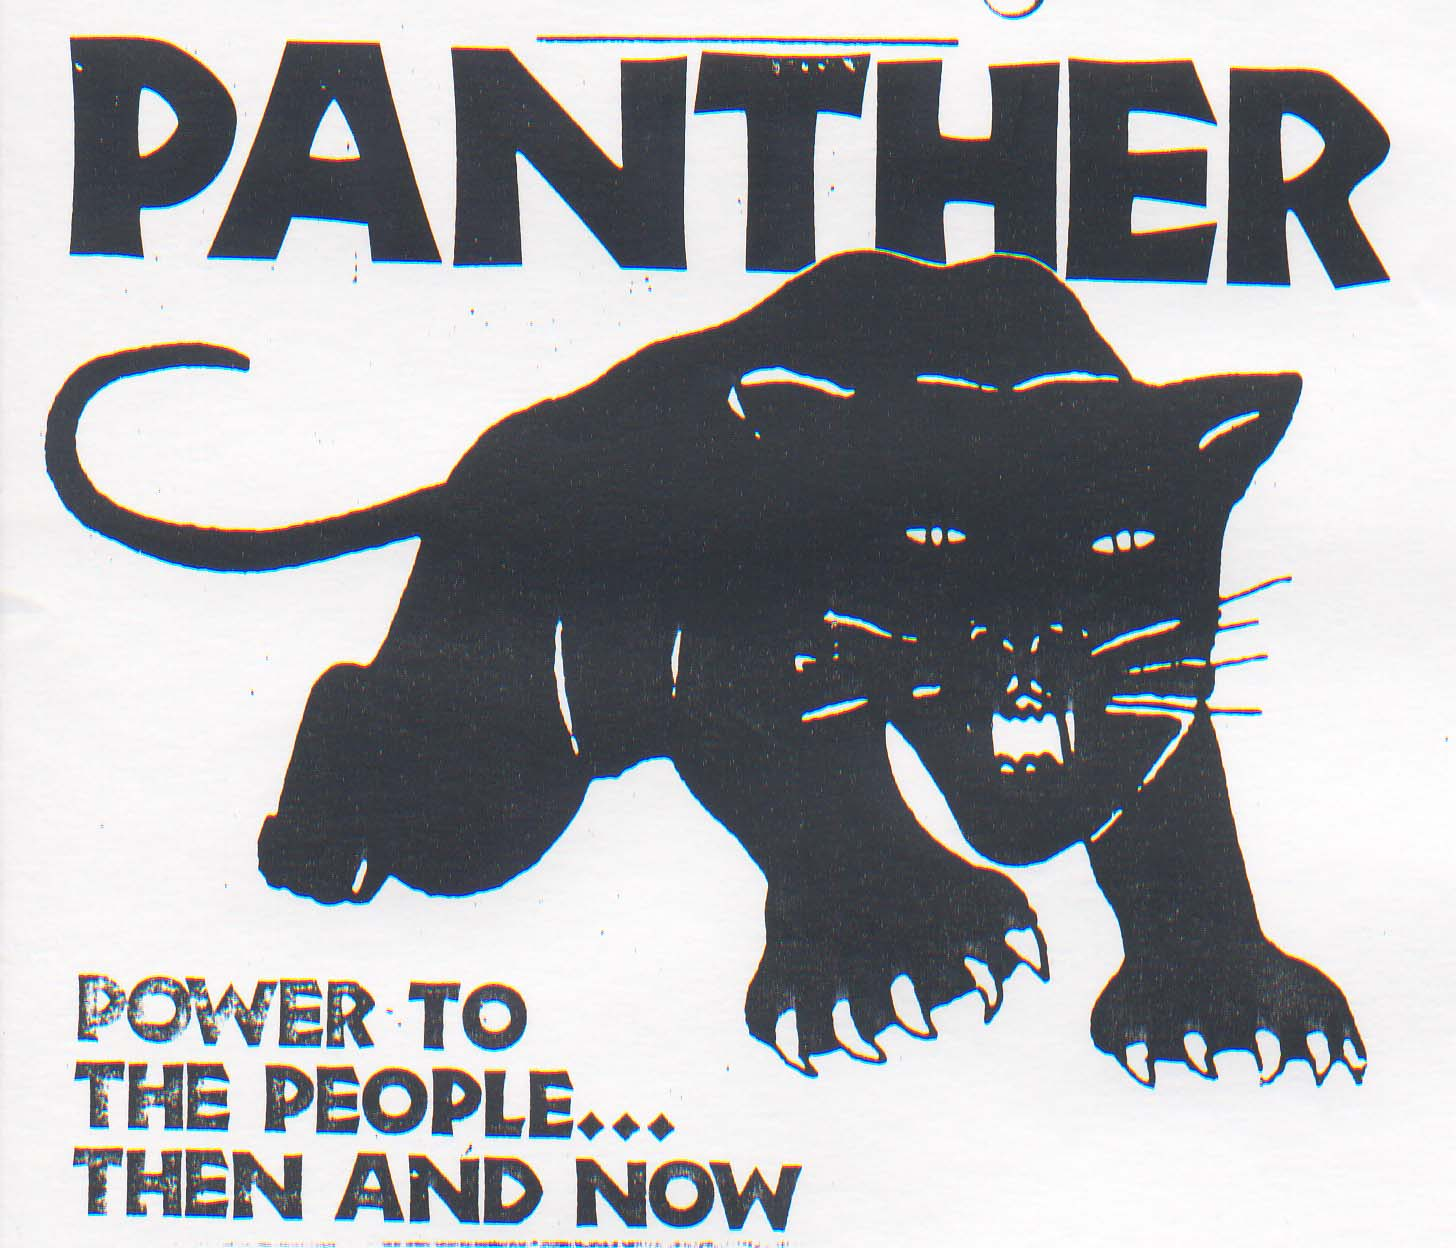 the hierarchy of the black panther in the global ecosystem The hierarchy of the black panther in the global ecosystem 445 words 1 page an essay on african-americans and the black panther 2,091 words 5 pages company.